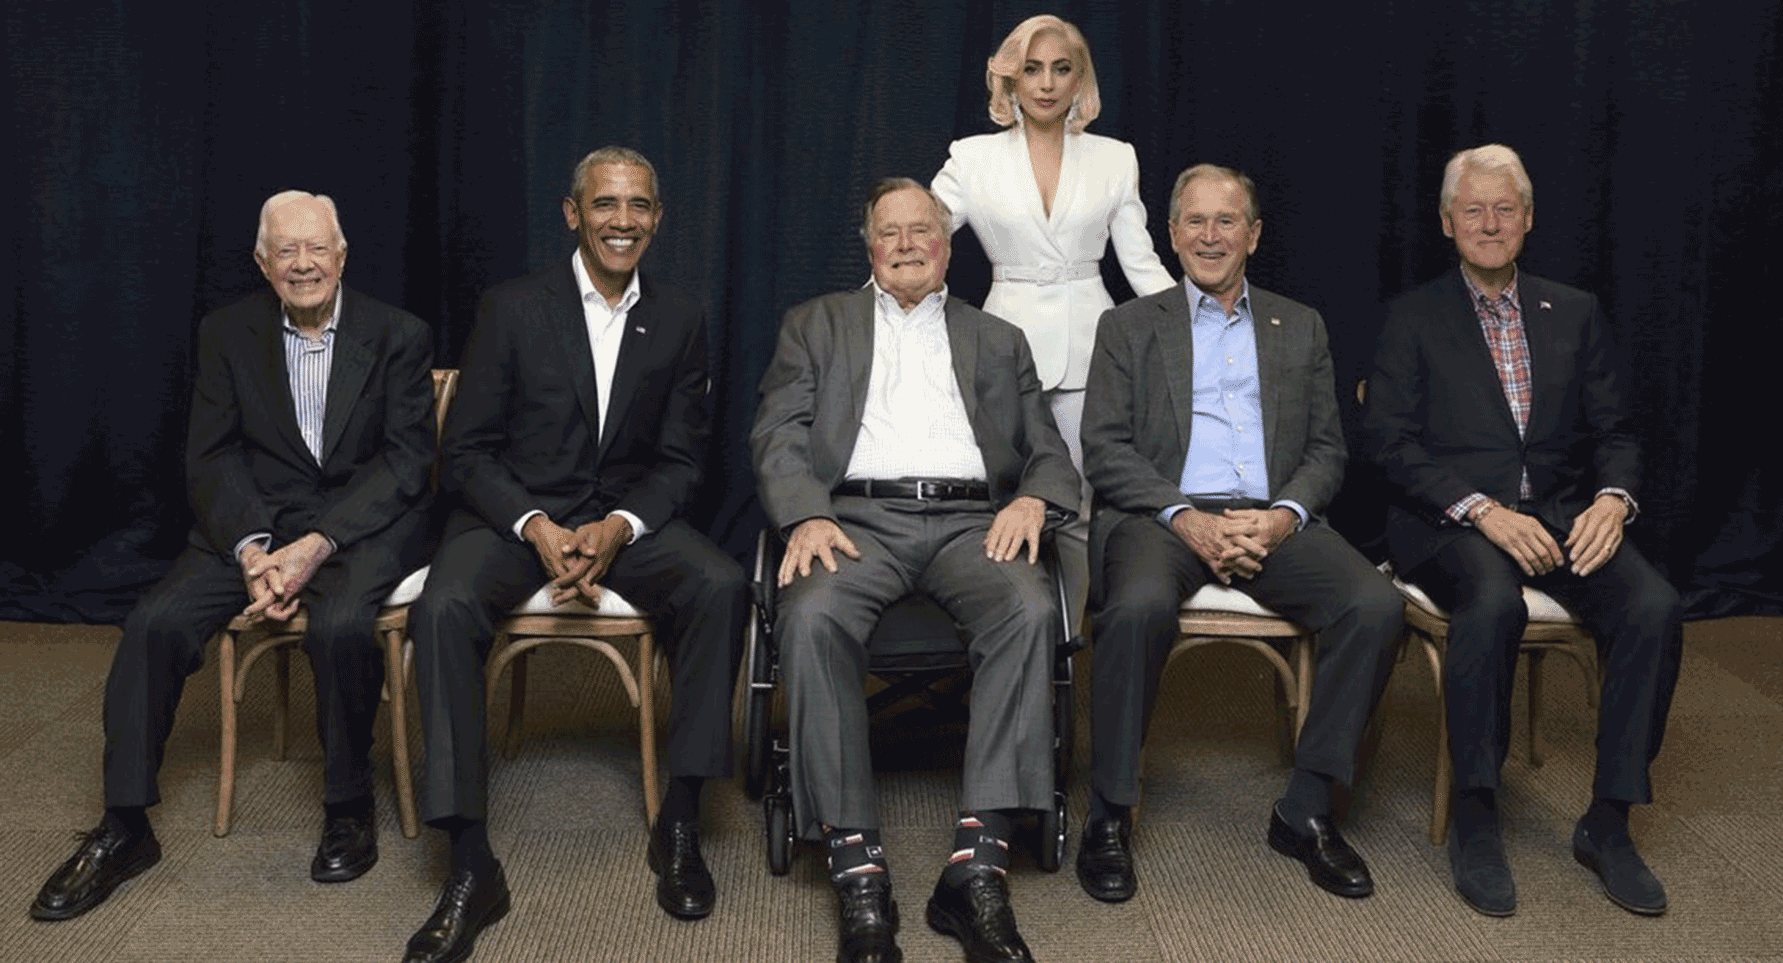 Lady Gaga and the Ex-US-Presidents, photo: https://twitter.com/ladygaga/status/921921998875439105/photo/1